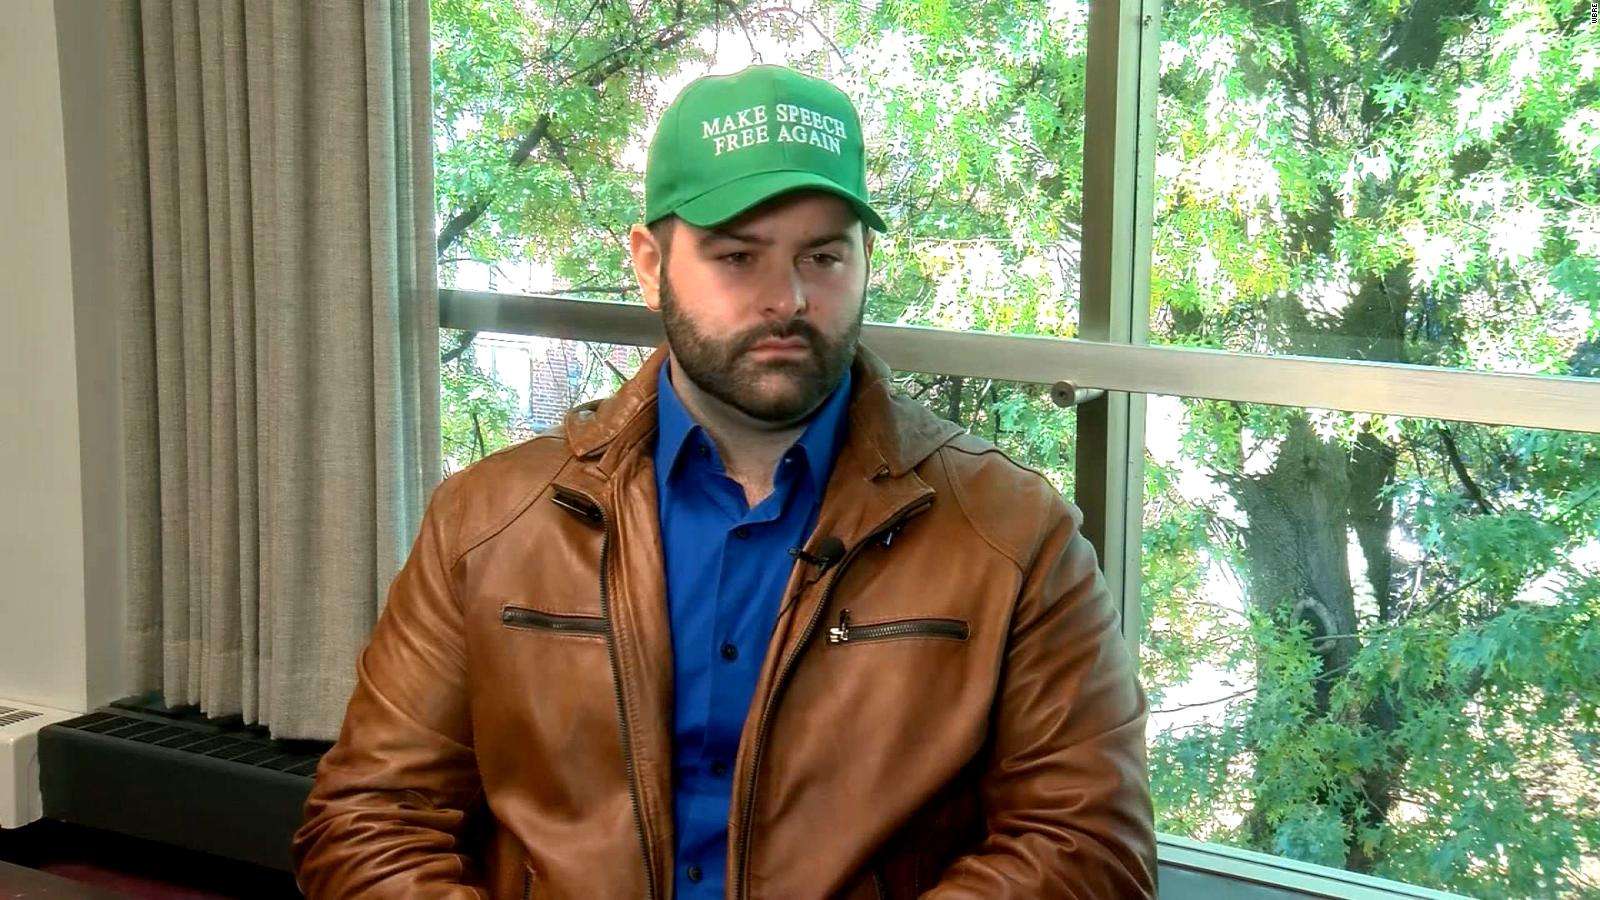 Gab CEO speaks out after Synagogue attack